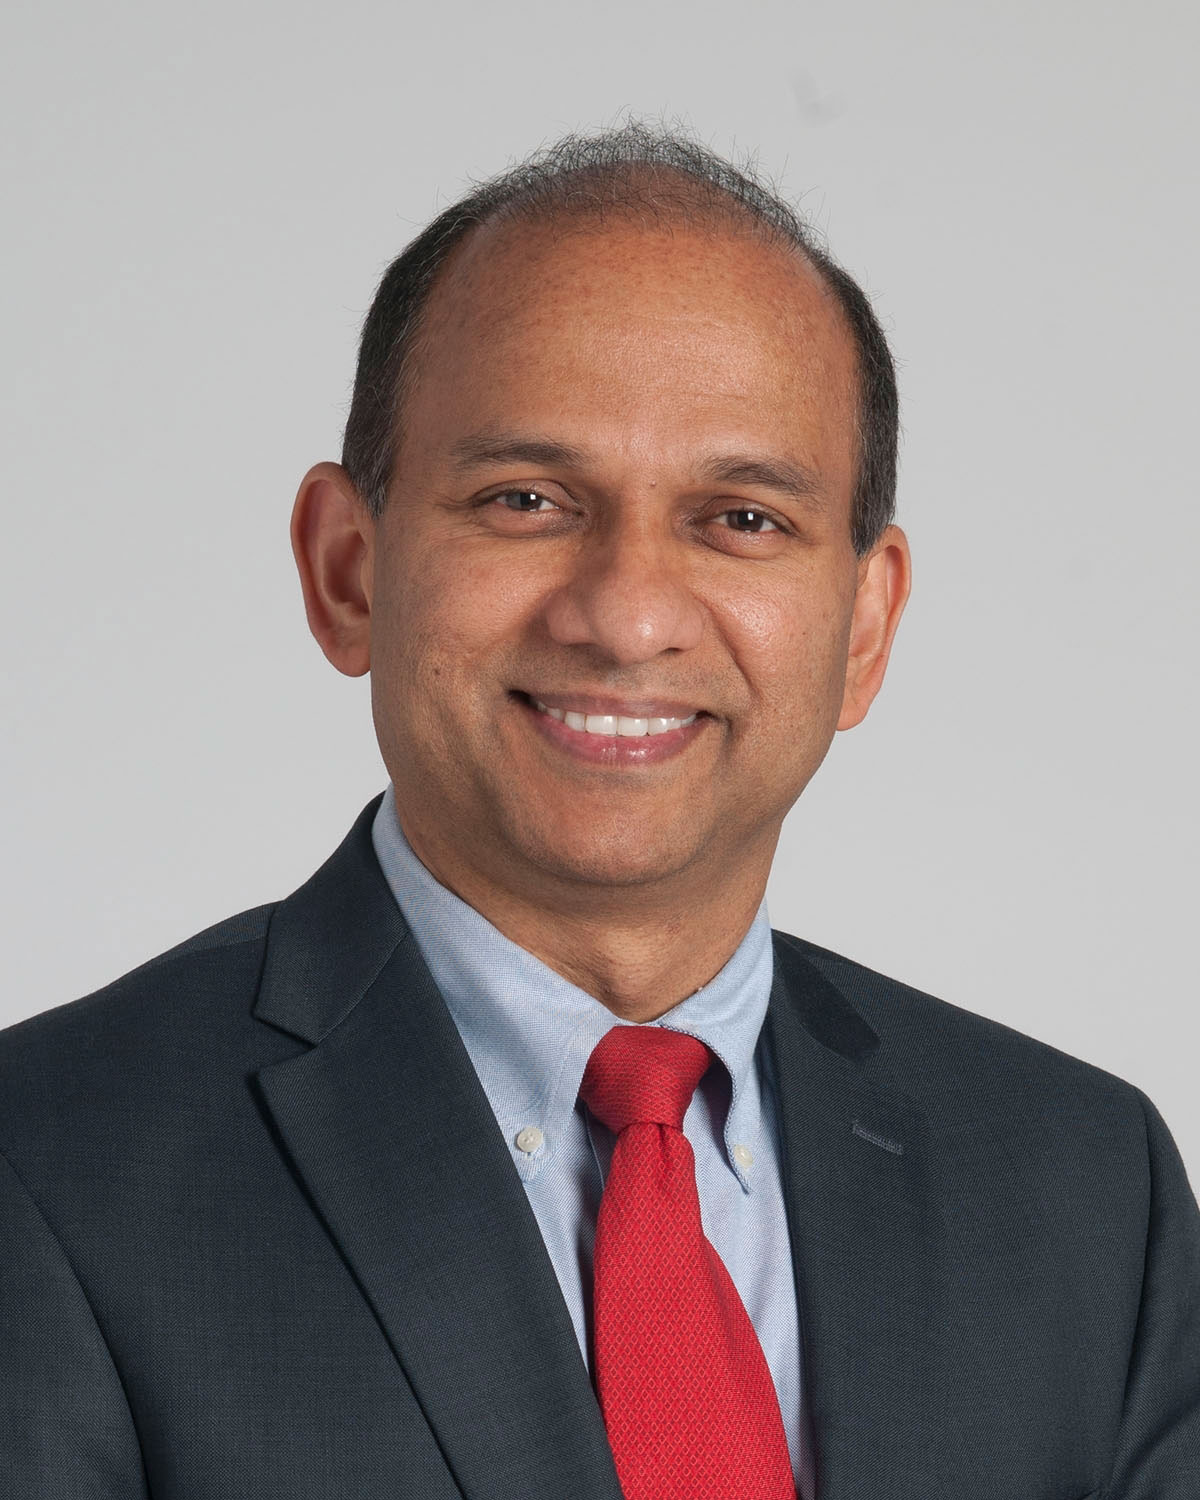 Jame Abraham, Director of Cleveland Clinic's Breast Medical Oncology Program